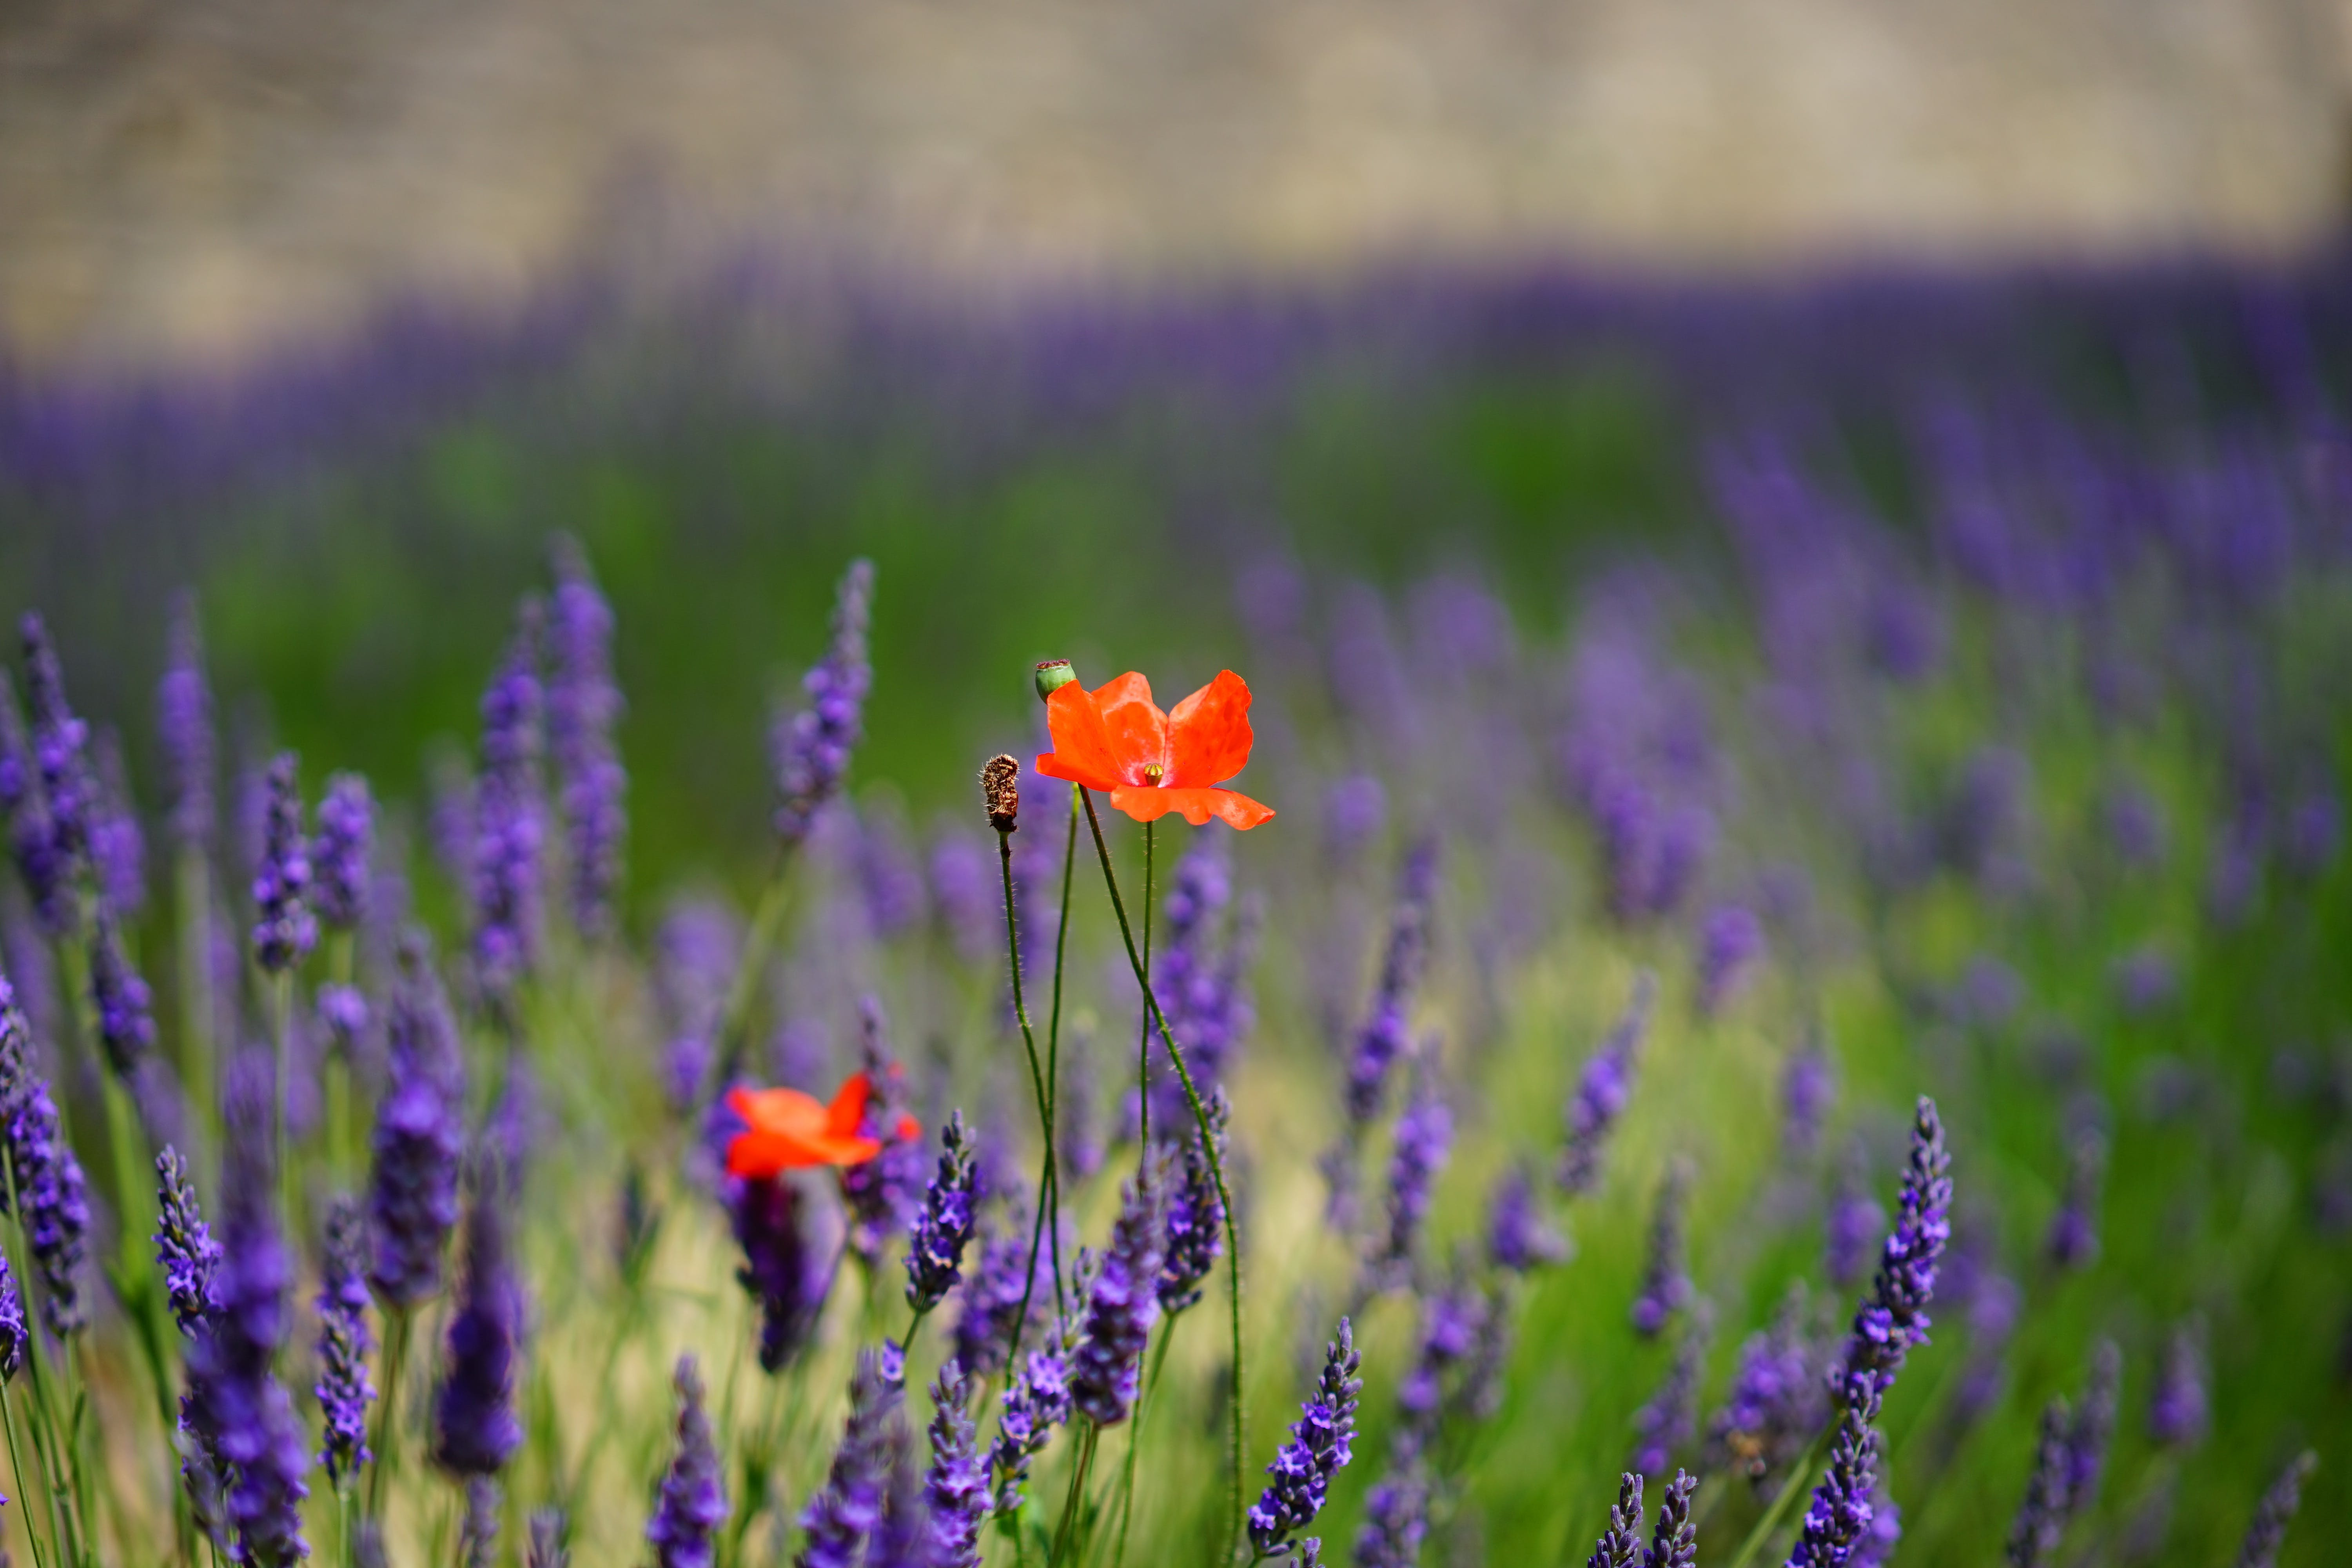 Orange Petal Flowers With Purple Grass during Daytime